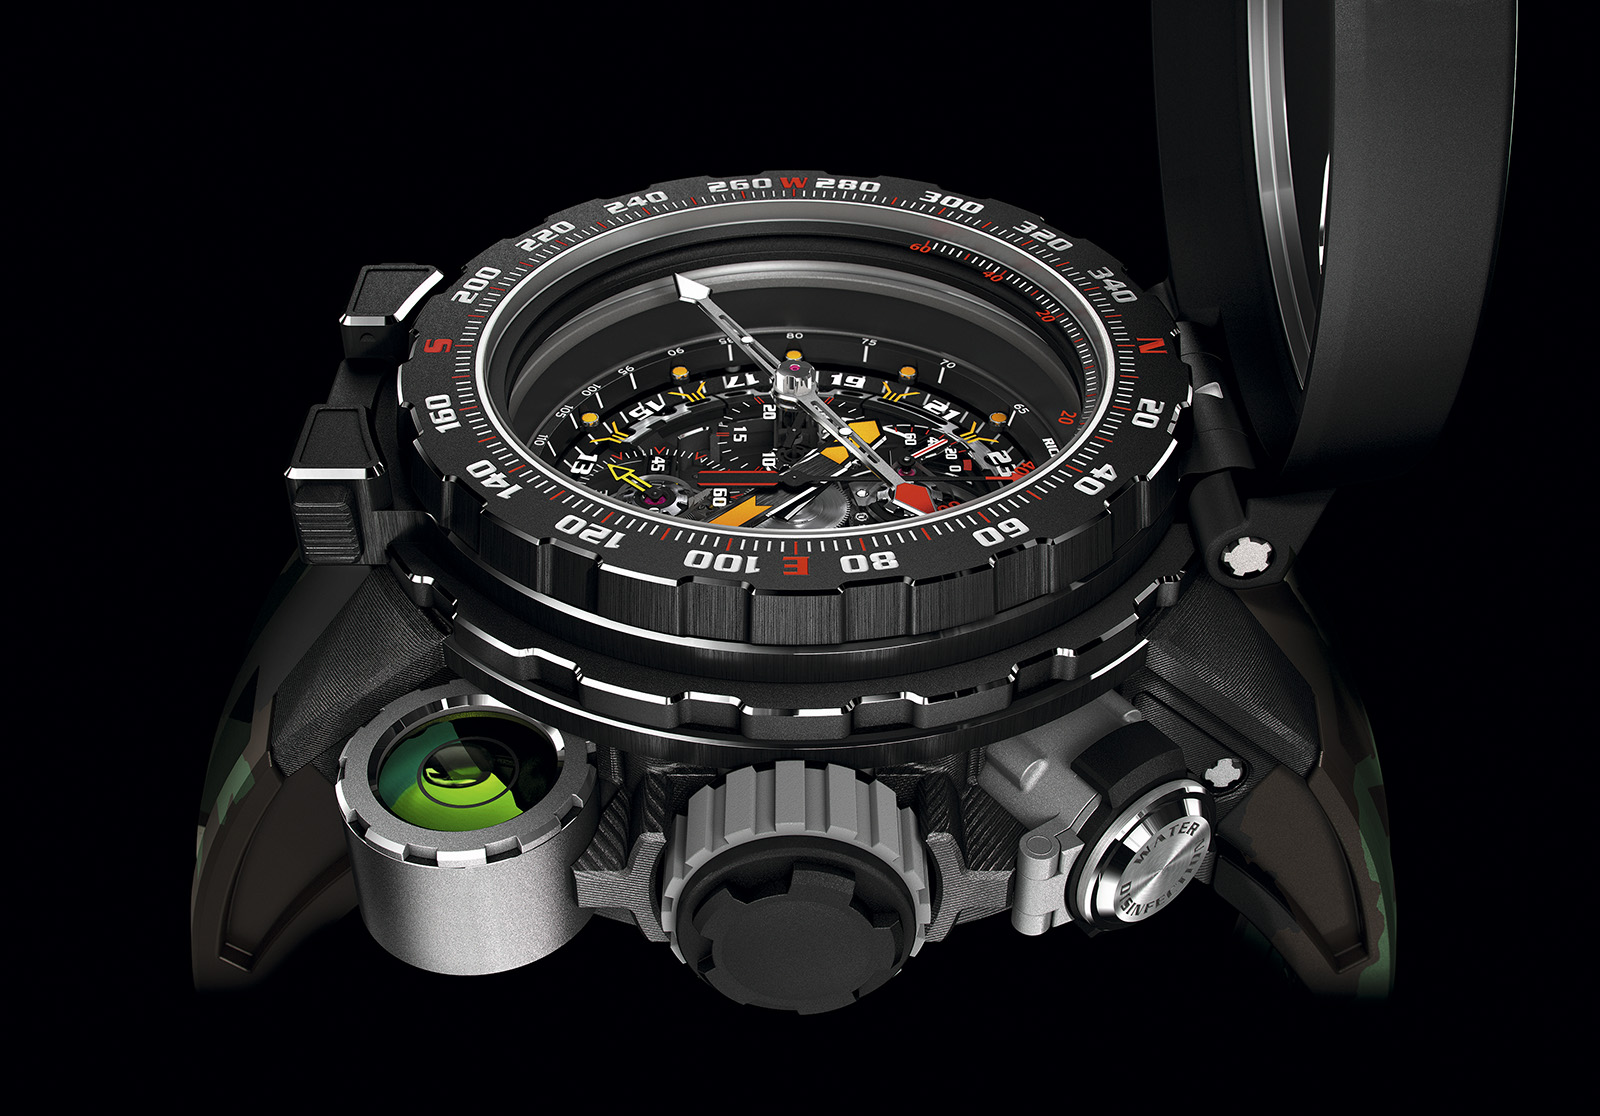 Richard mille rm 25 01 tourbillon adventure un reloj de para sylvester stallone for Adventure watches